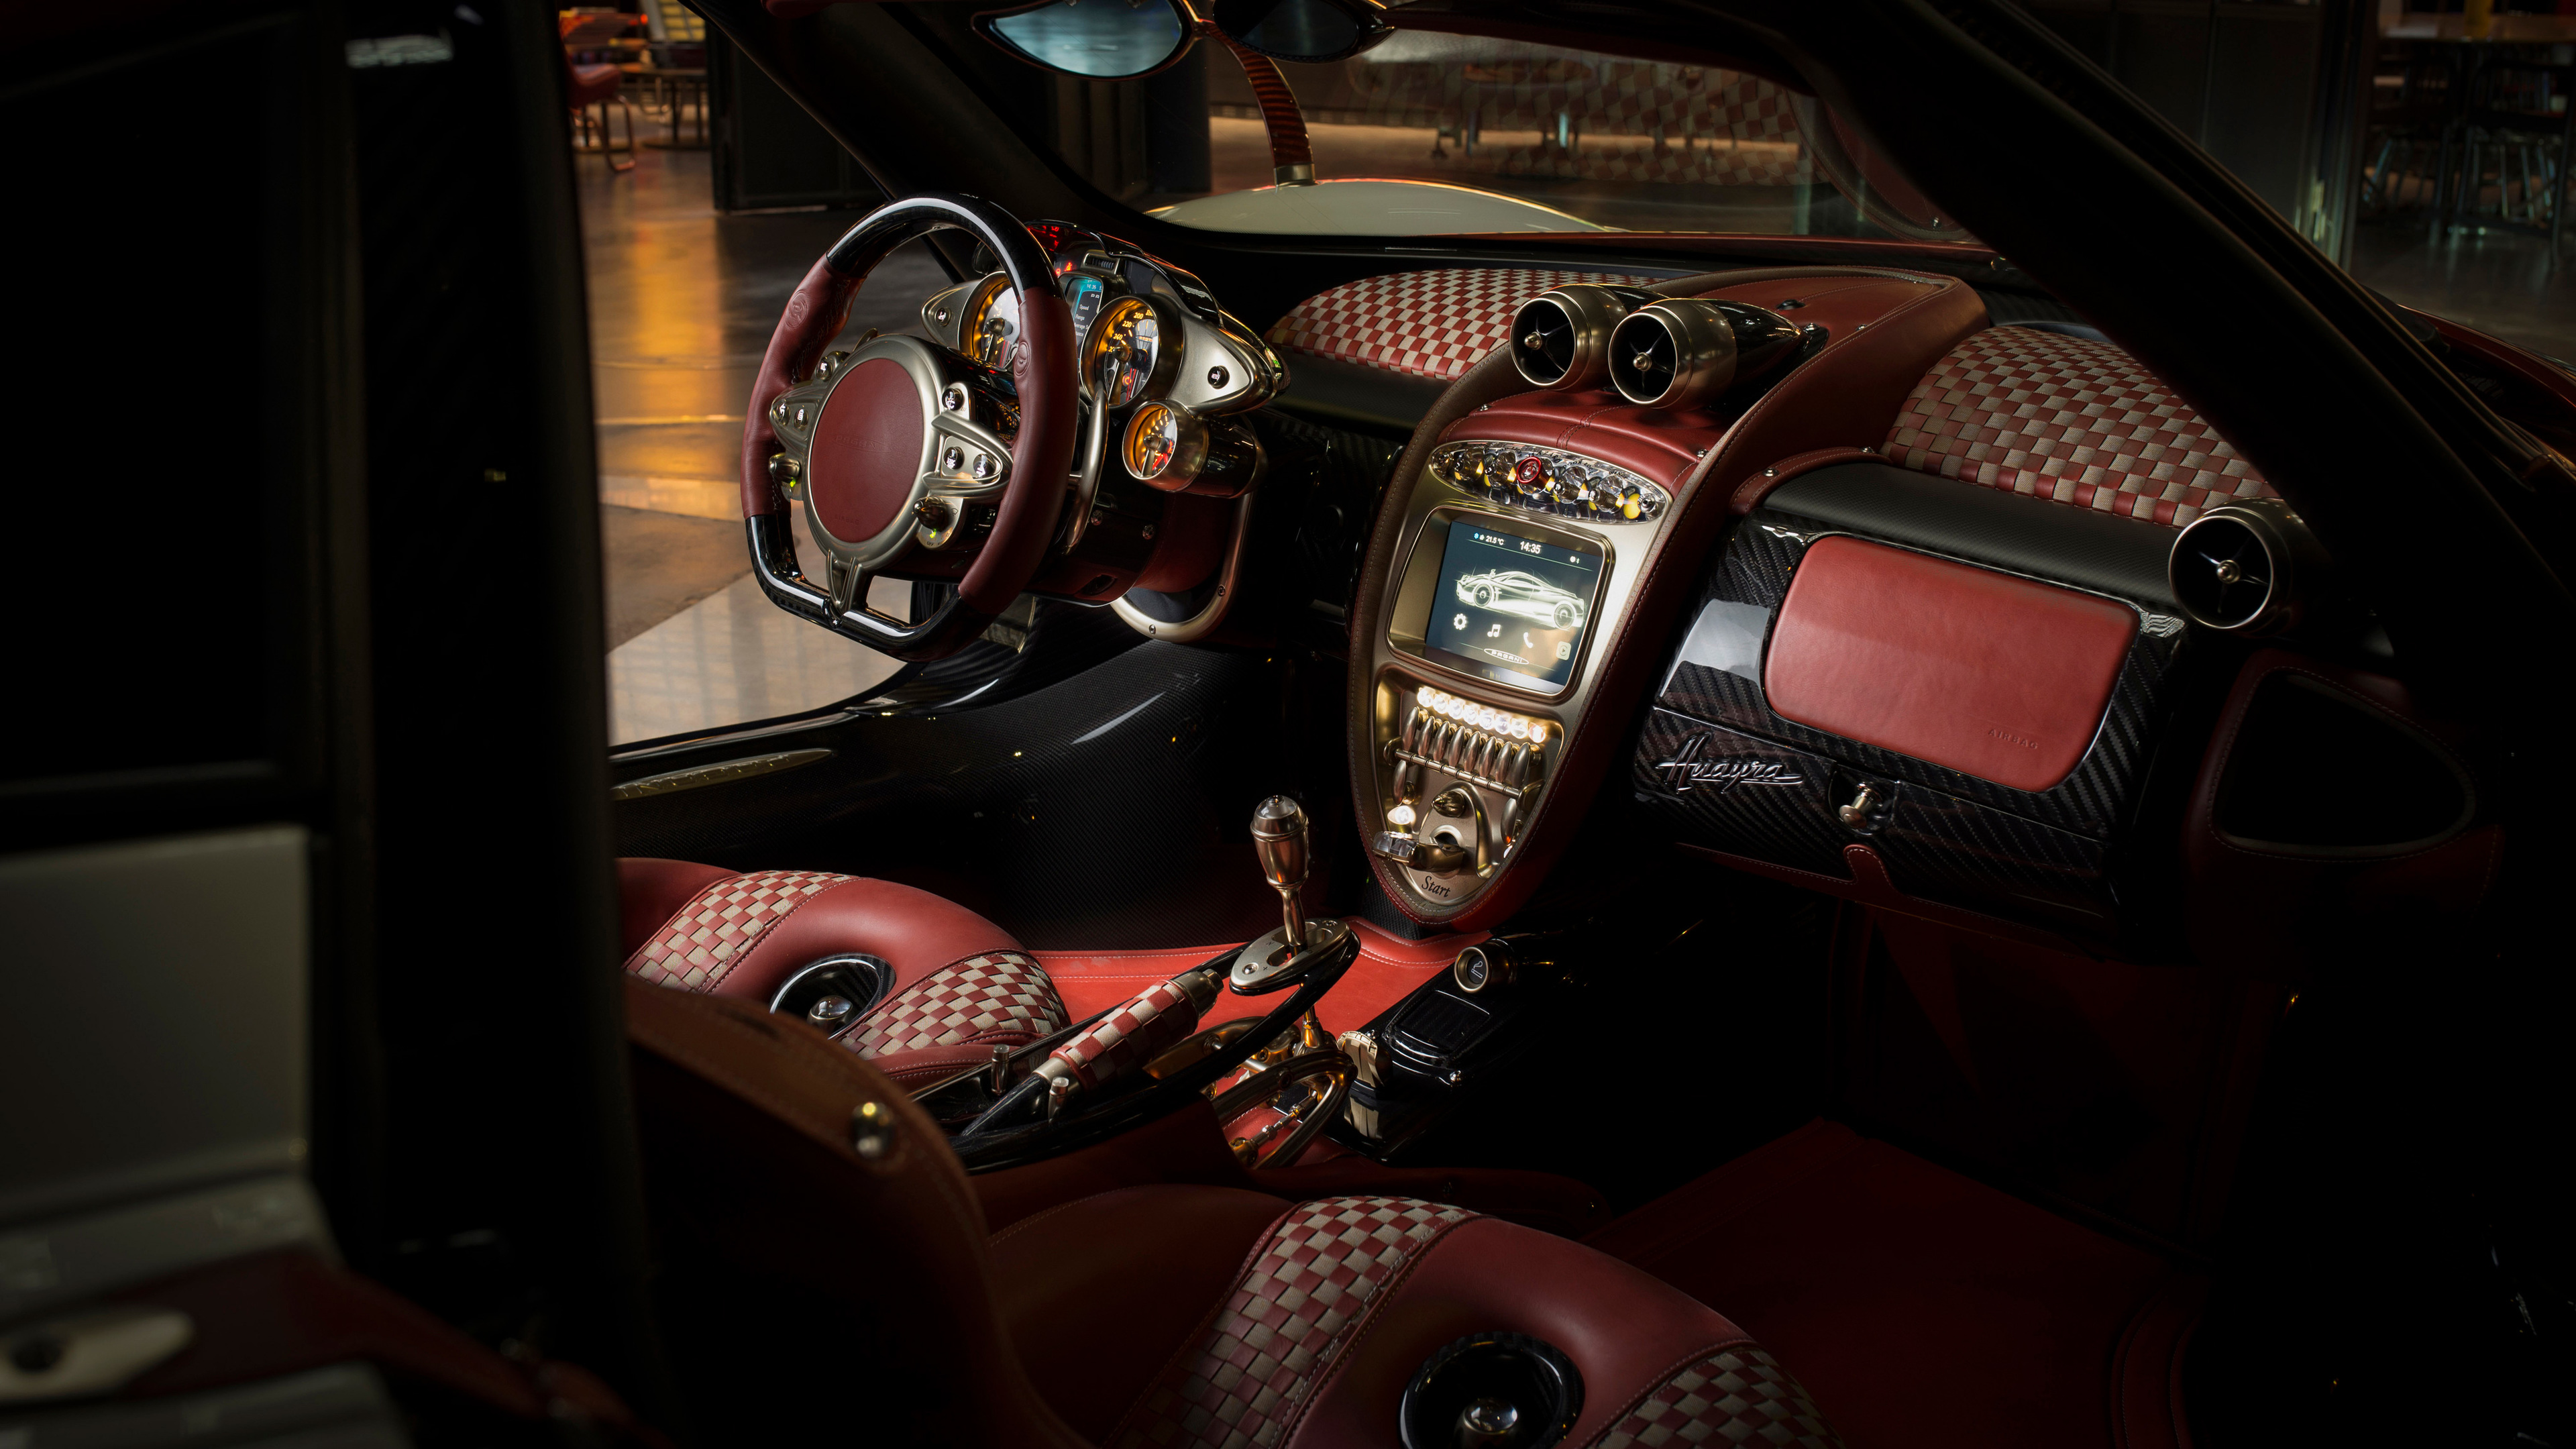 pagani huayra lampo 2018 interior 1539108943 - Pagani Huayra Lampo 2018 Interior - pagani wallpapers, pagani huayra lampo wallpapers, hd-wallpapers, cars wallpapers, 4k-wallpapers, 2018 cars wallpapers